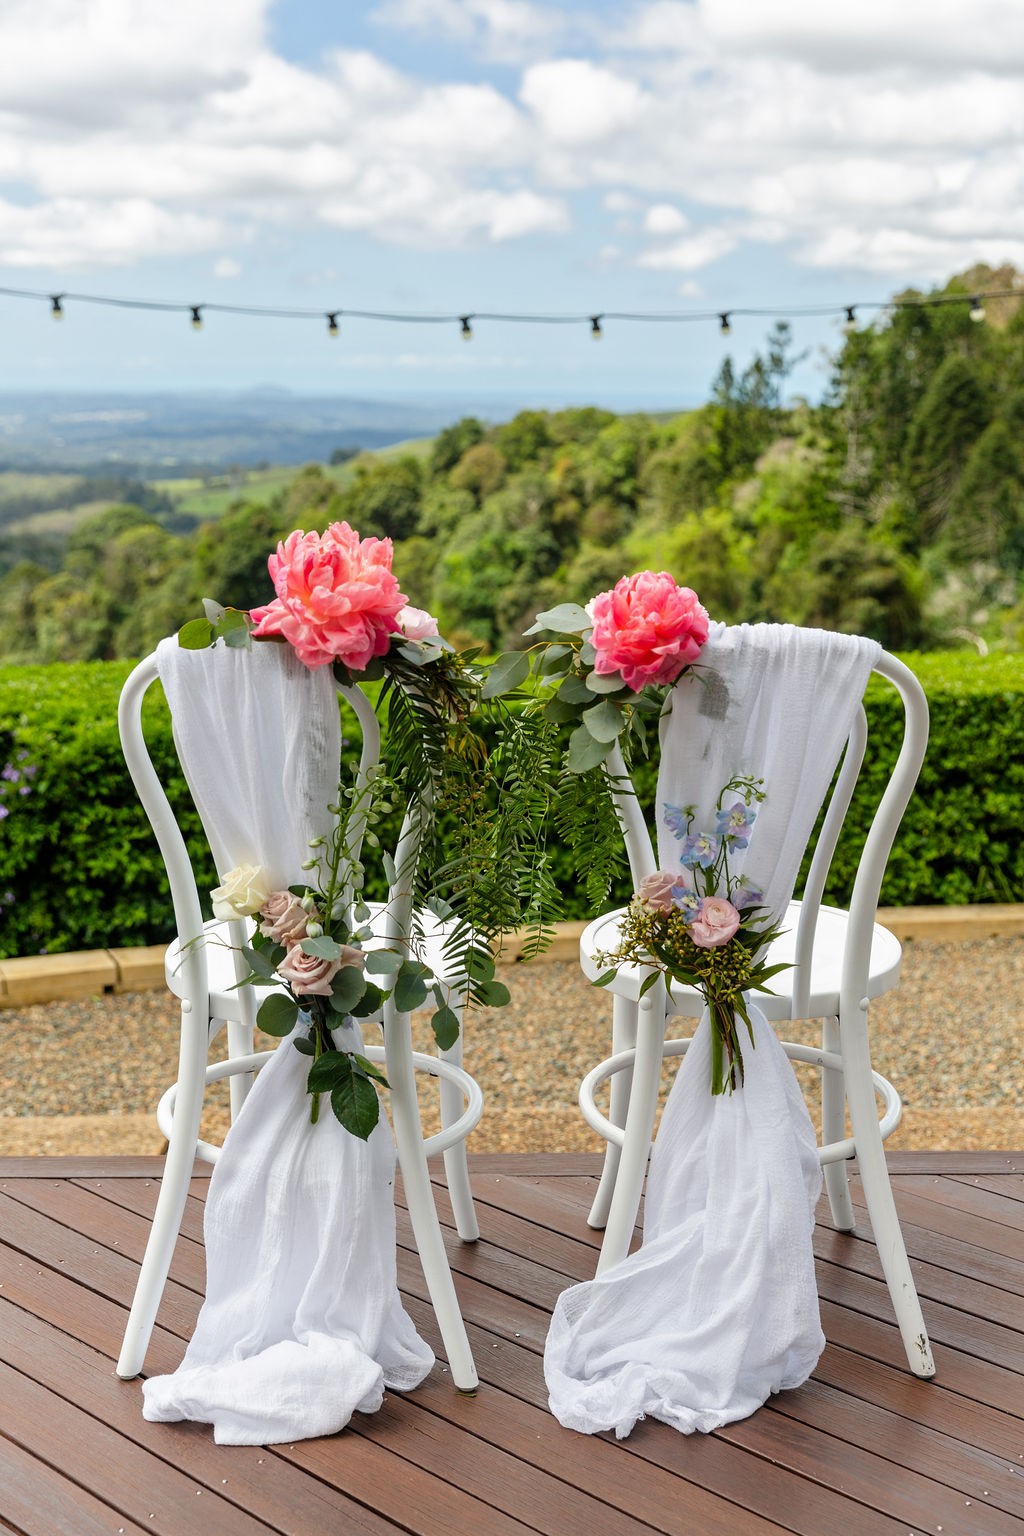 Chair floral feature with coral peonies